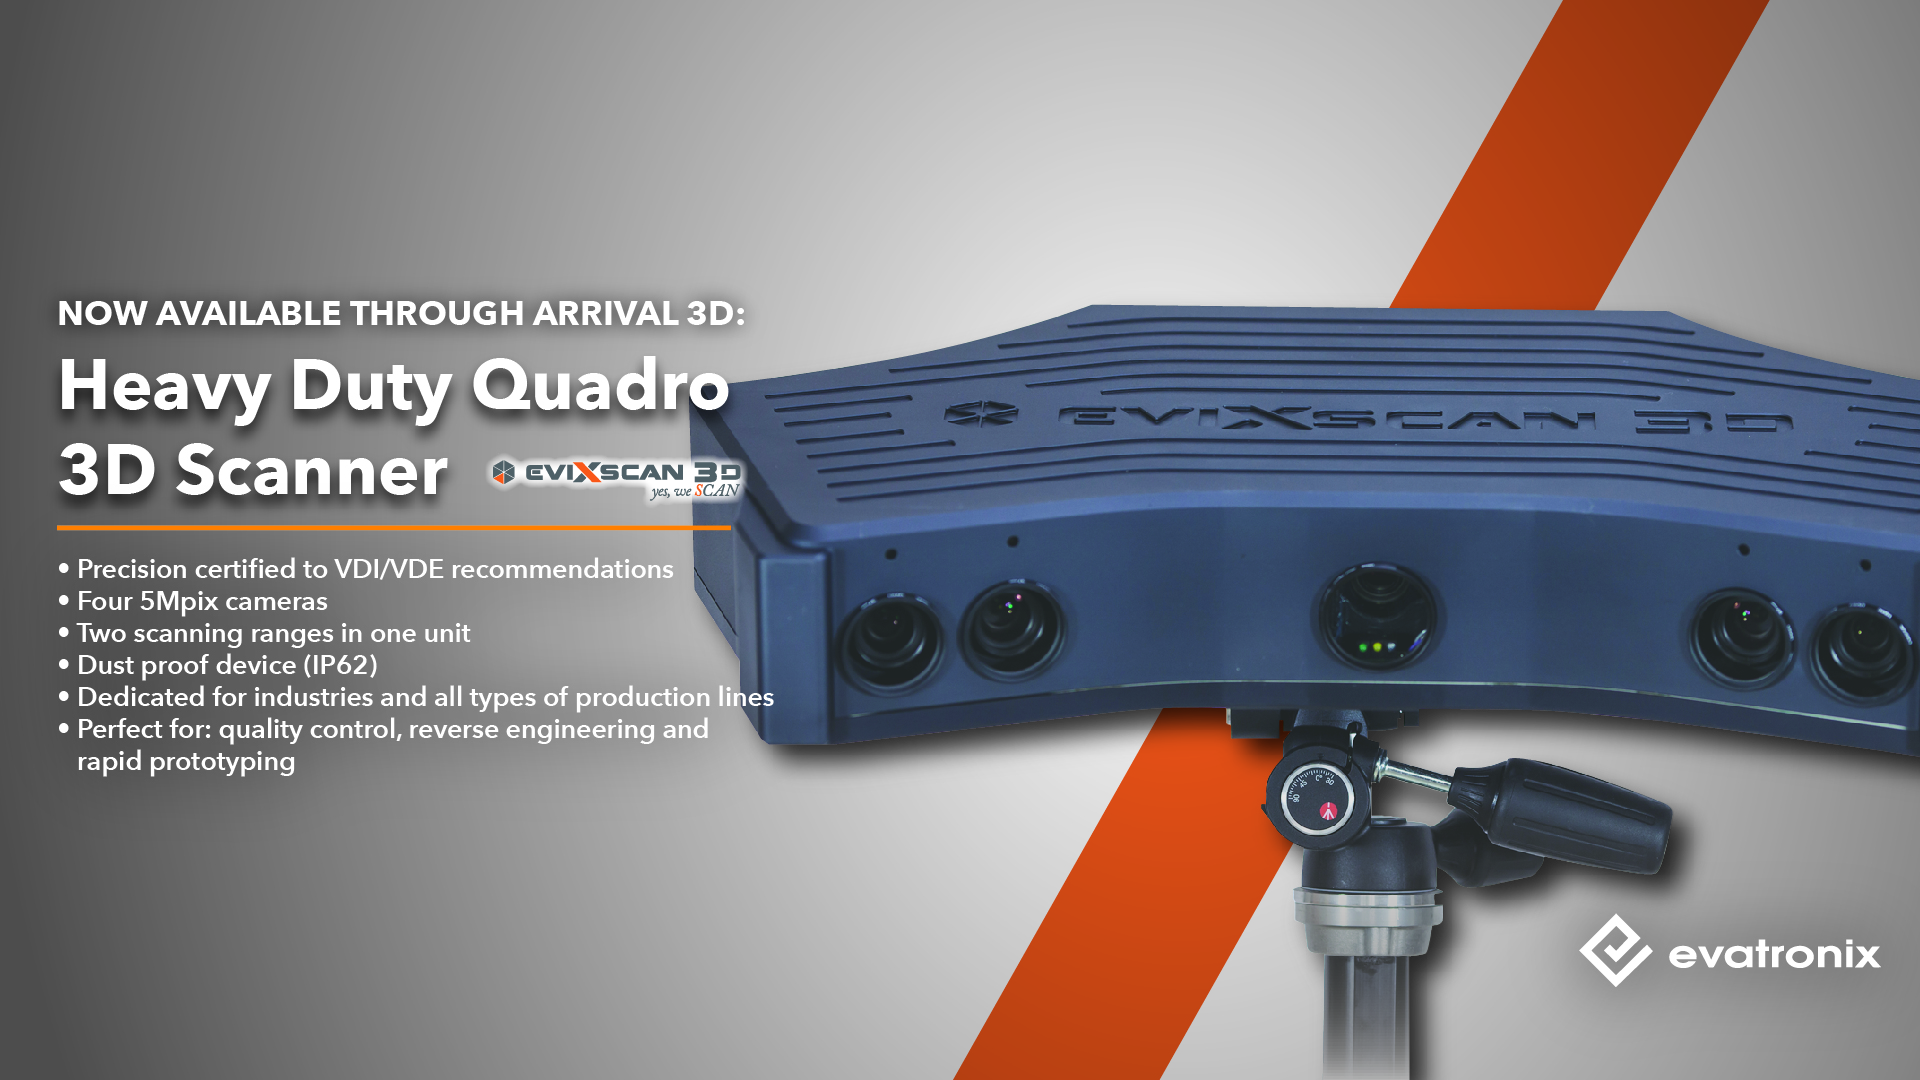 Heavy Duty Quadro scanner